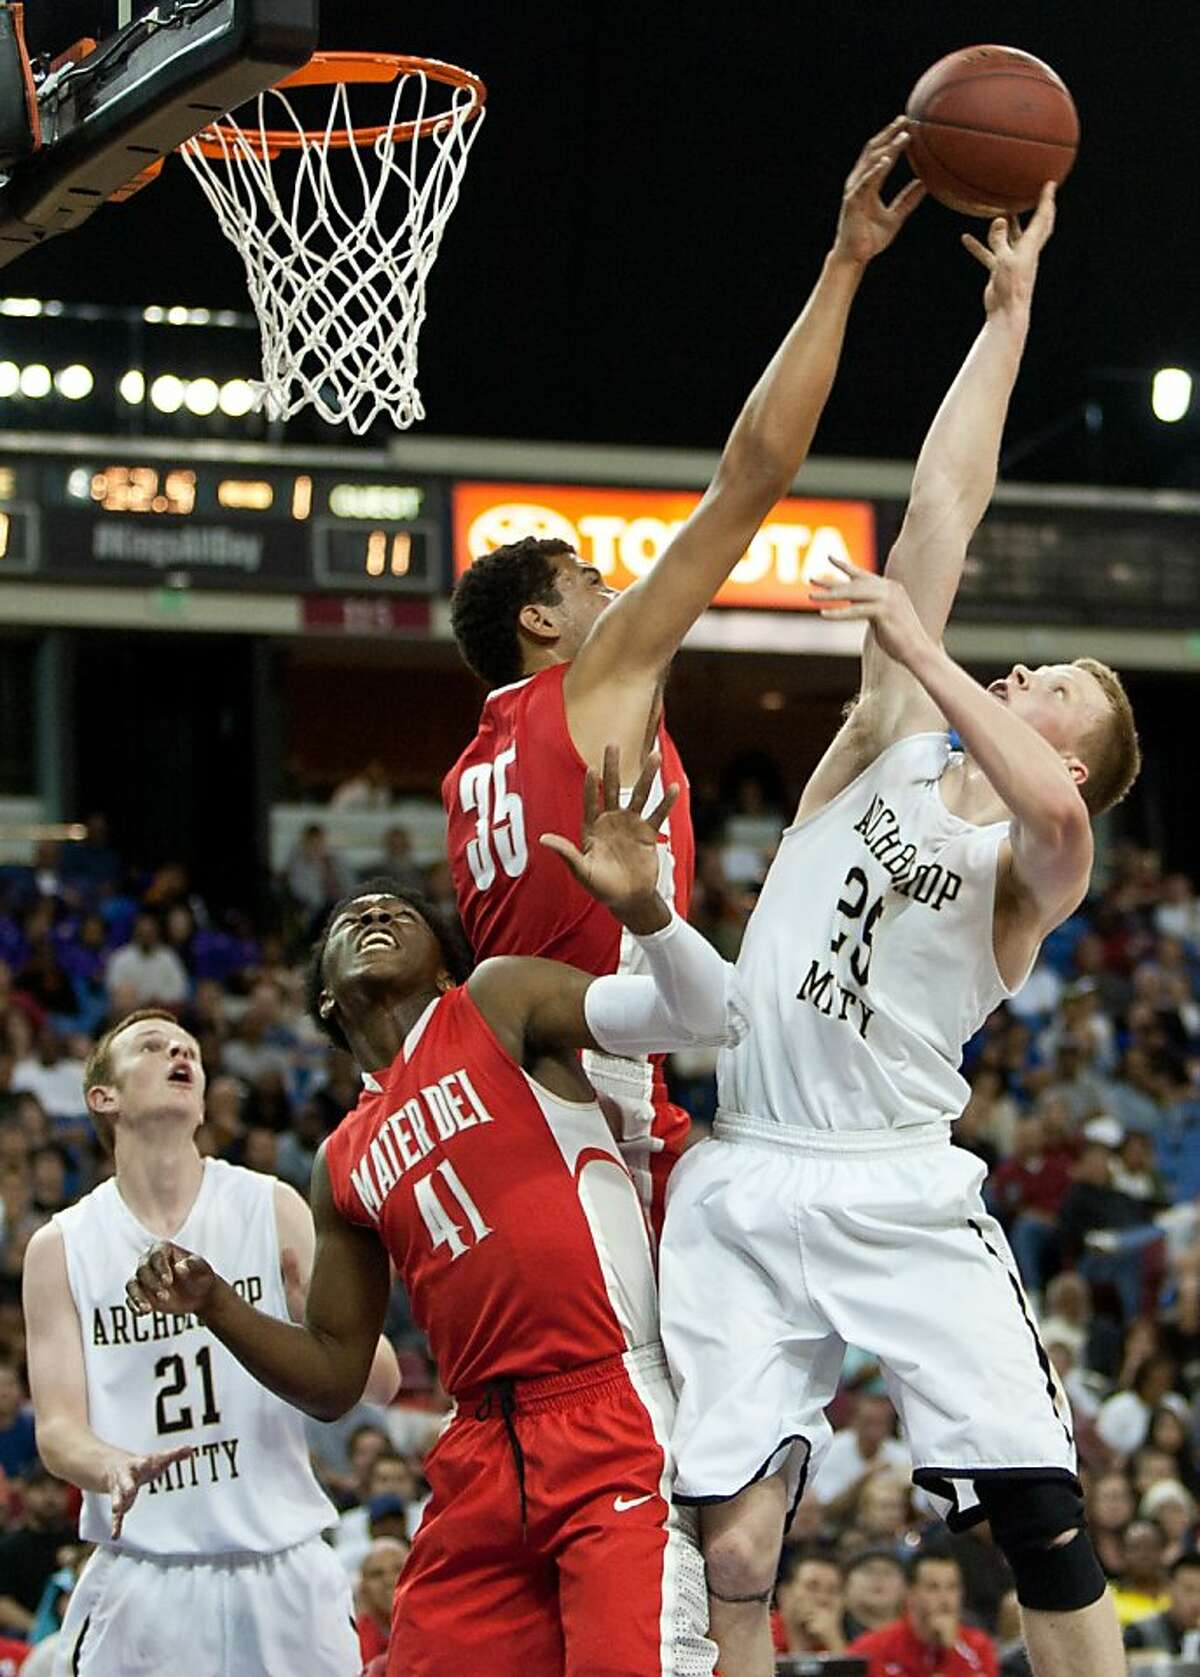 Archbishop Mitty's Brandon Farrell, right, is blocked by Mater Dei's MJ Cage, left, at the CIF State Basketball Championships March 23, 2013 in Sacramento, California.